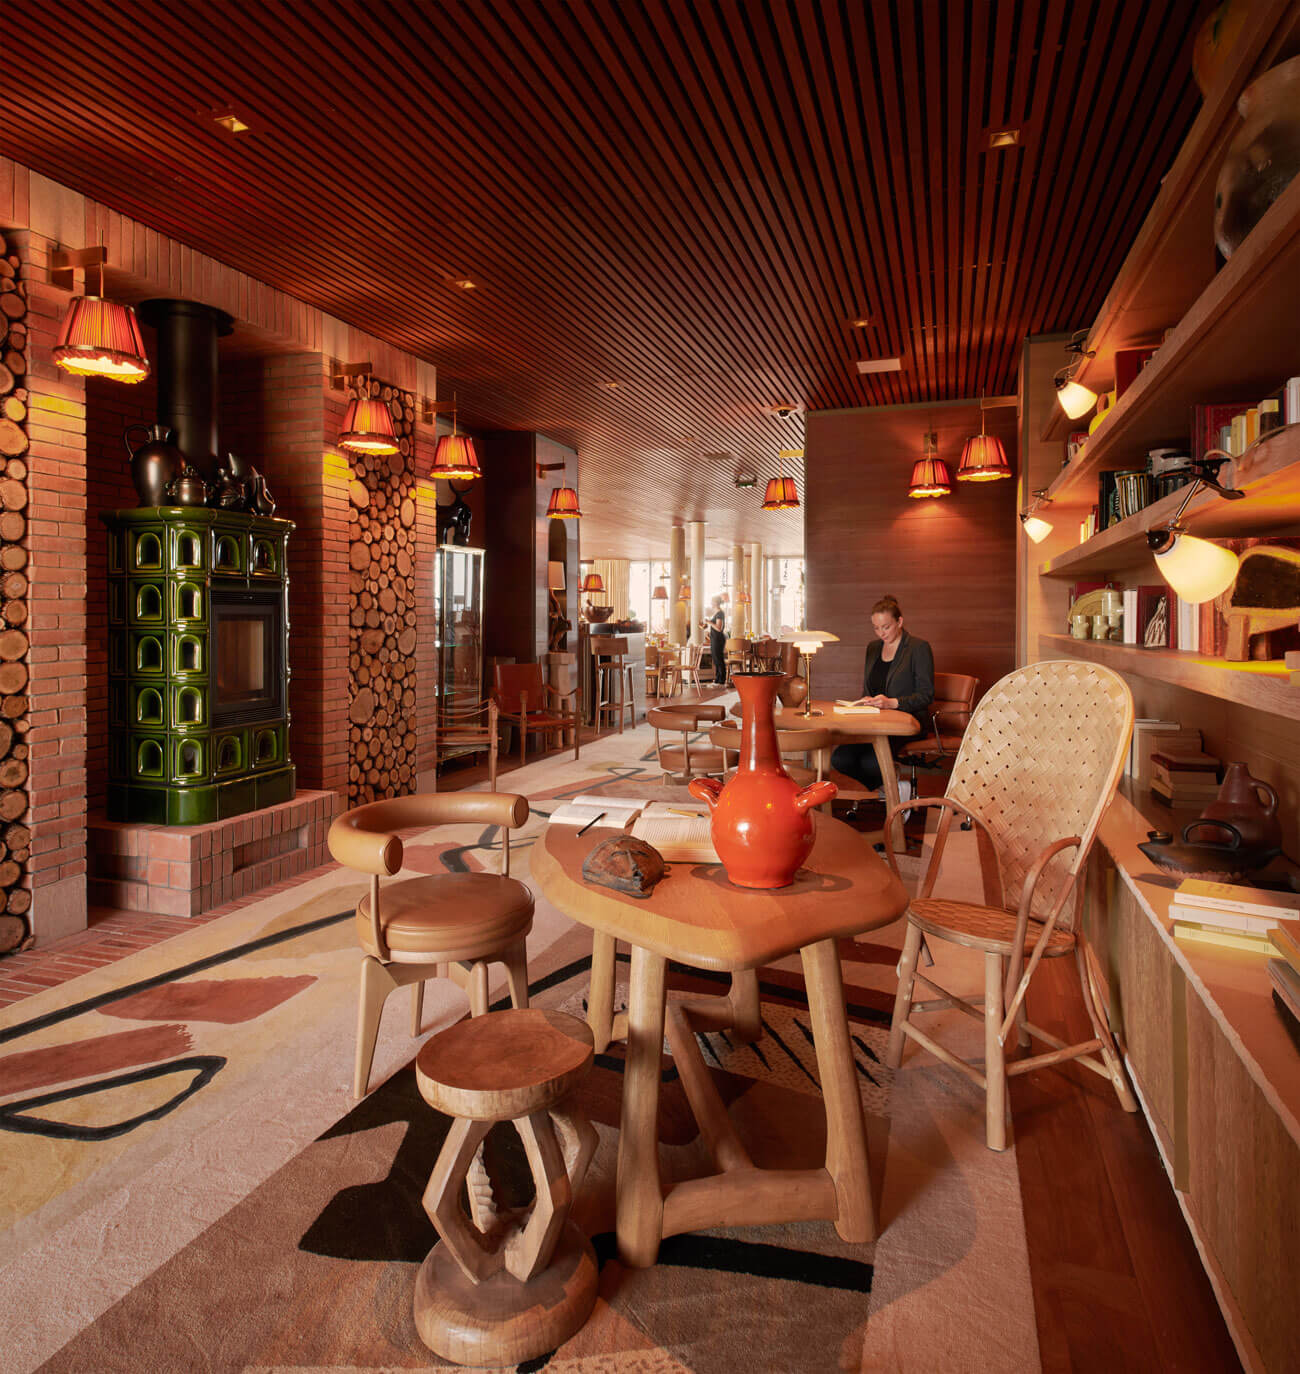 Raw Luxury Meets Authenticity In This Hotel Interior In Provence_authentic interior